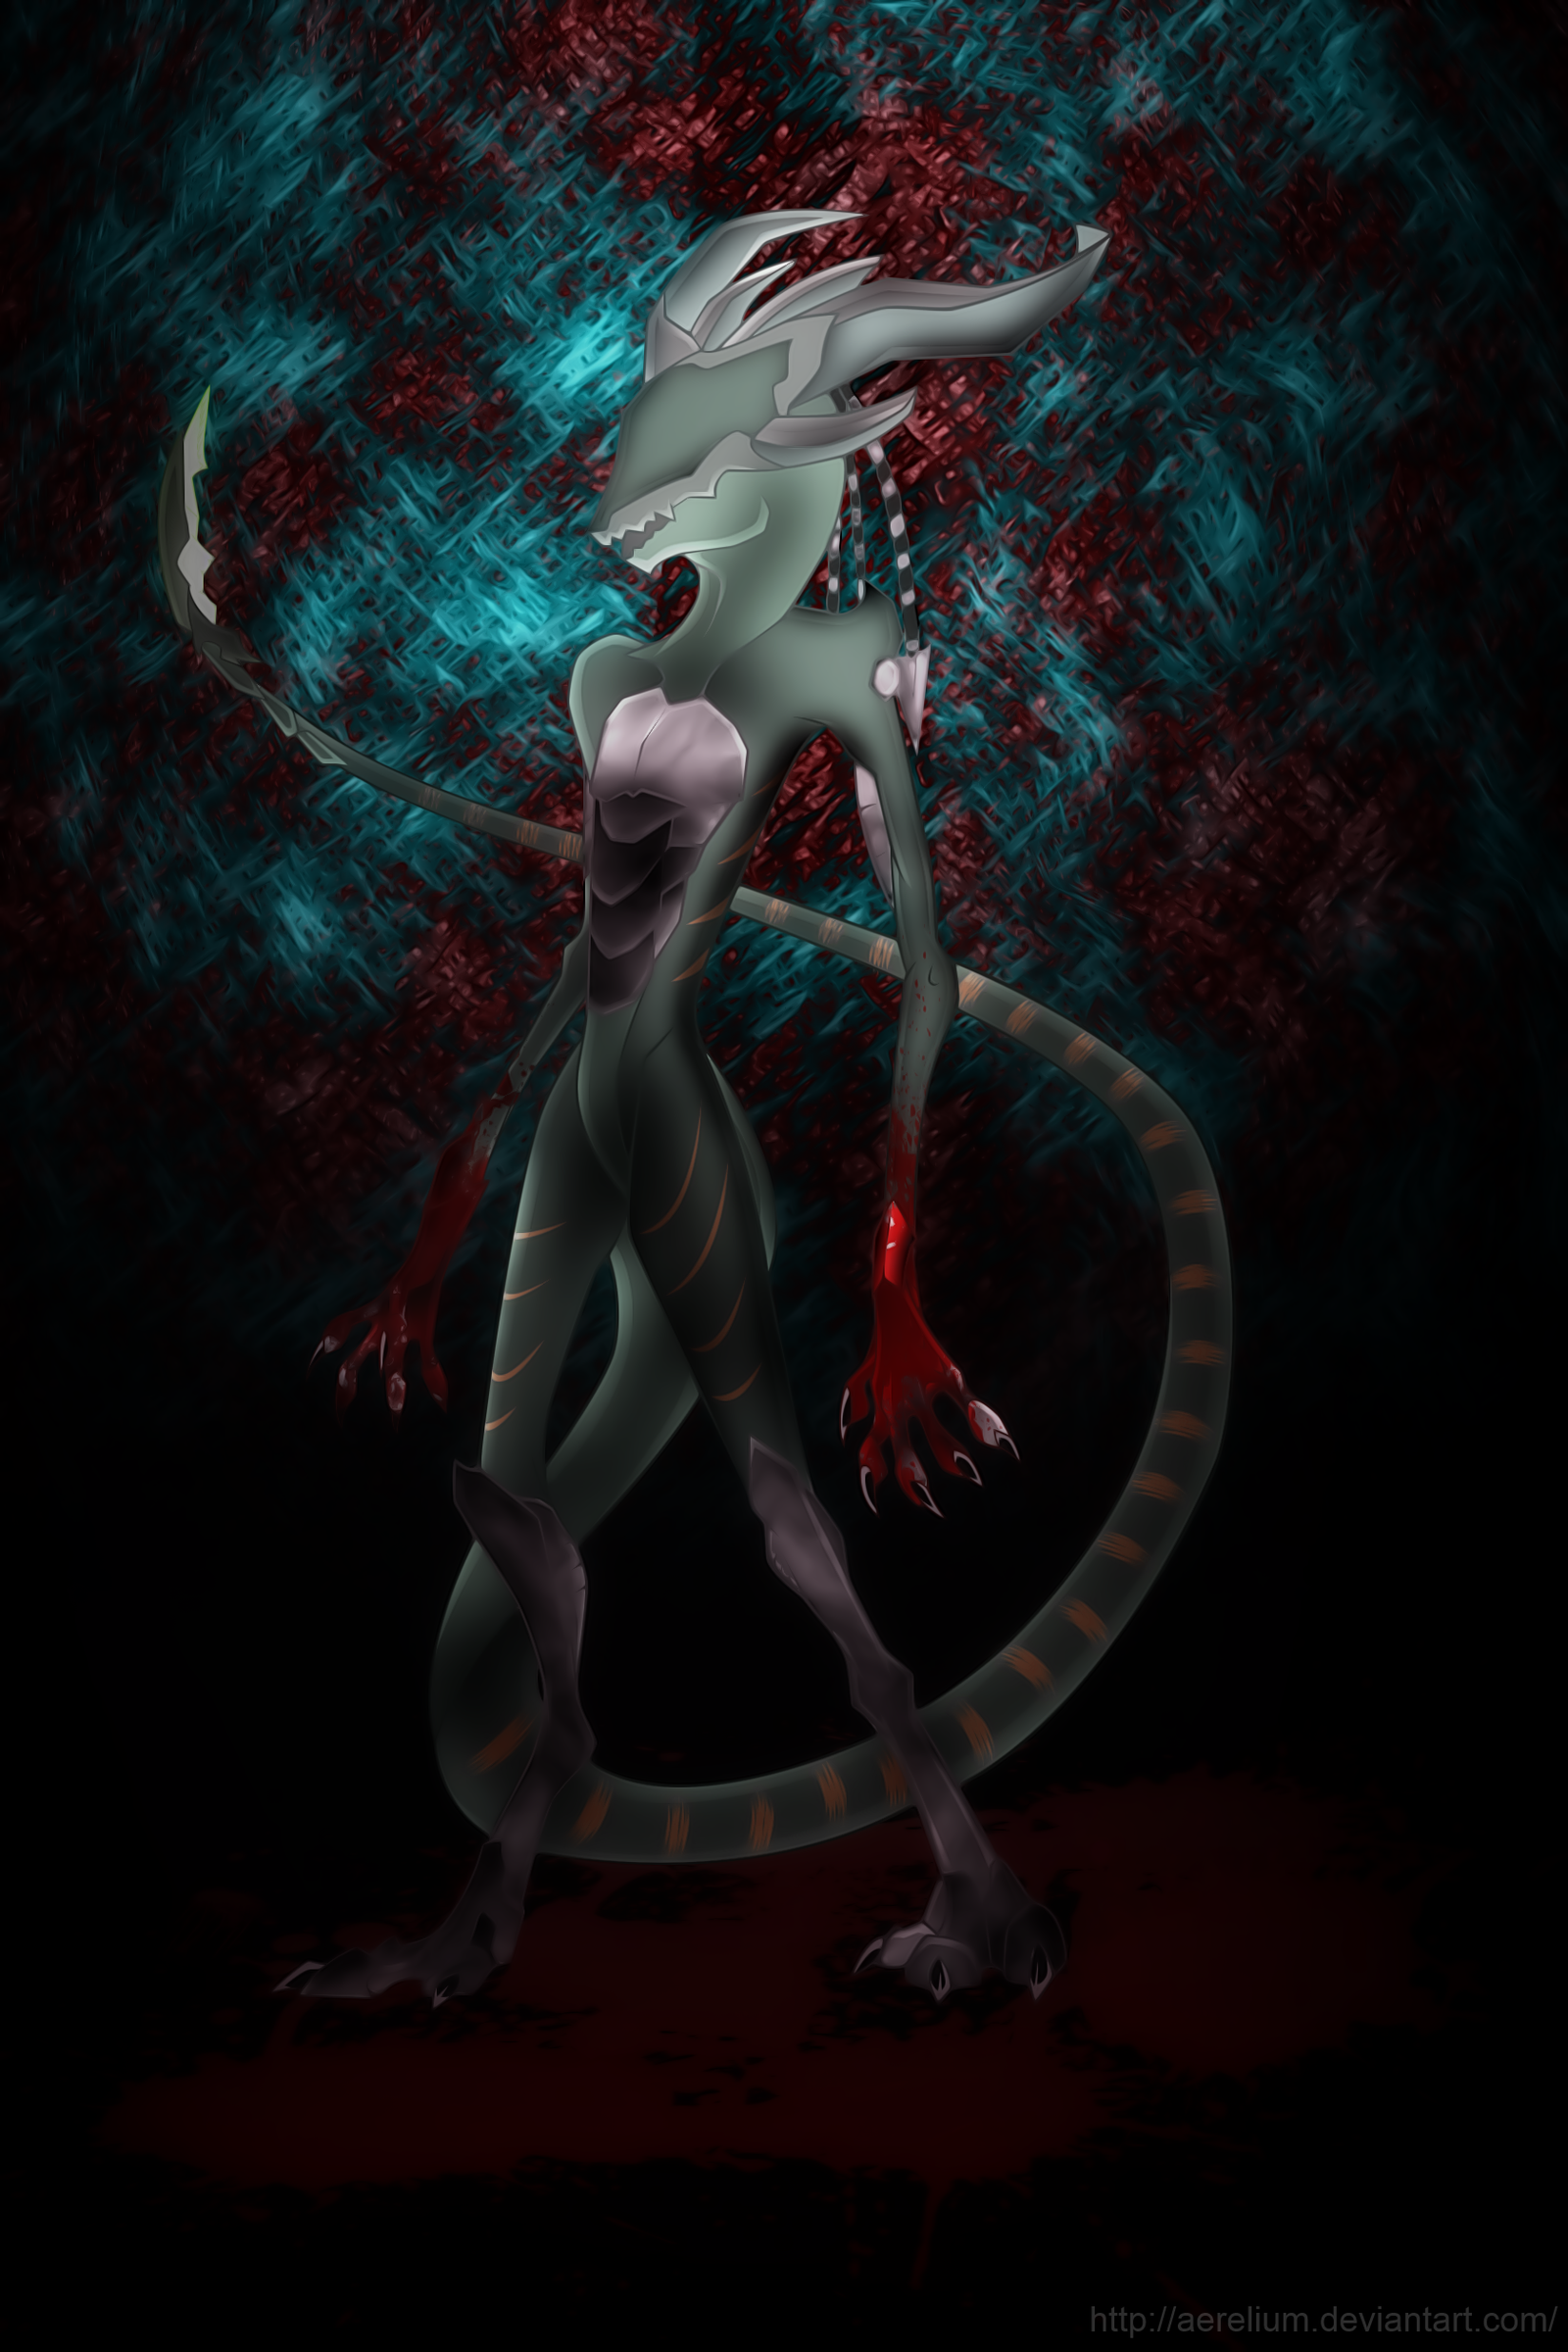 corrupted_by_aerelium-d7y5wfb.png